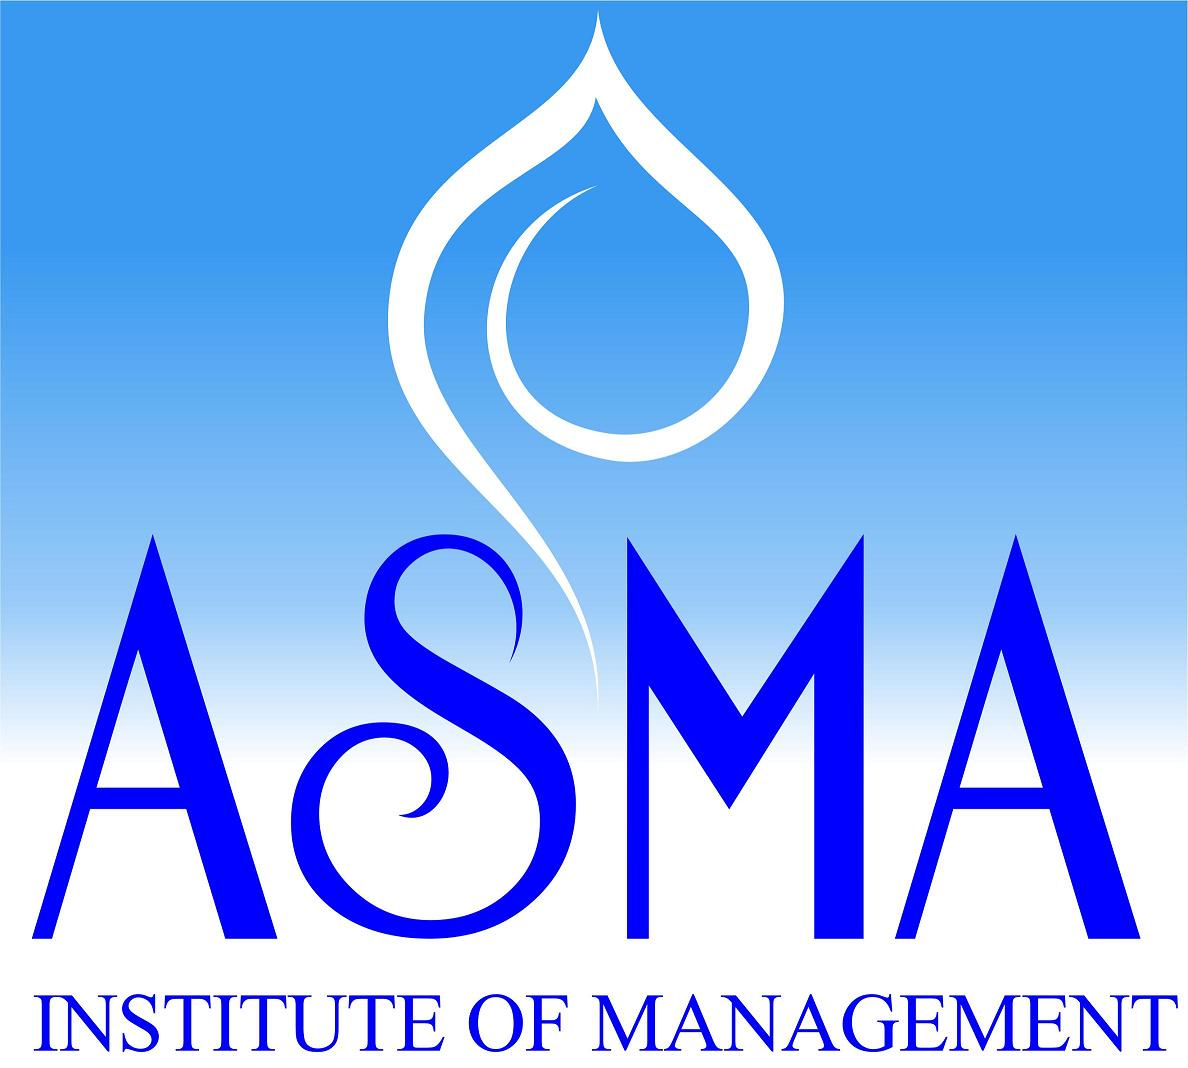 Asma Institute of Management - Pune Image